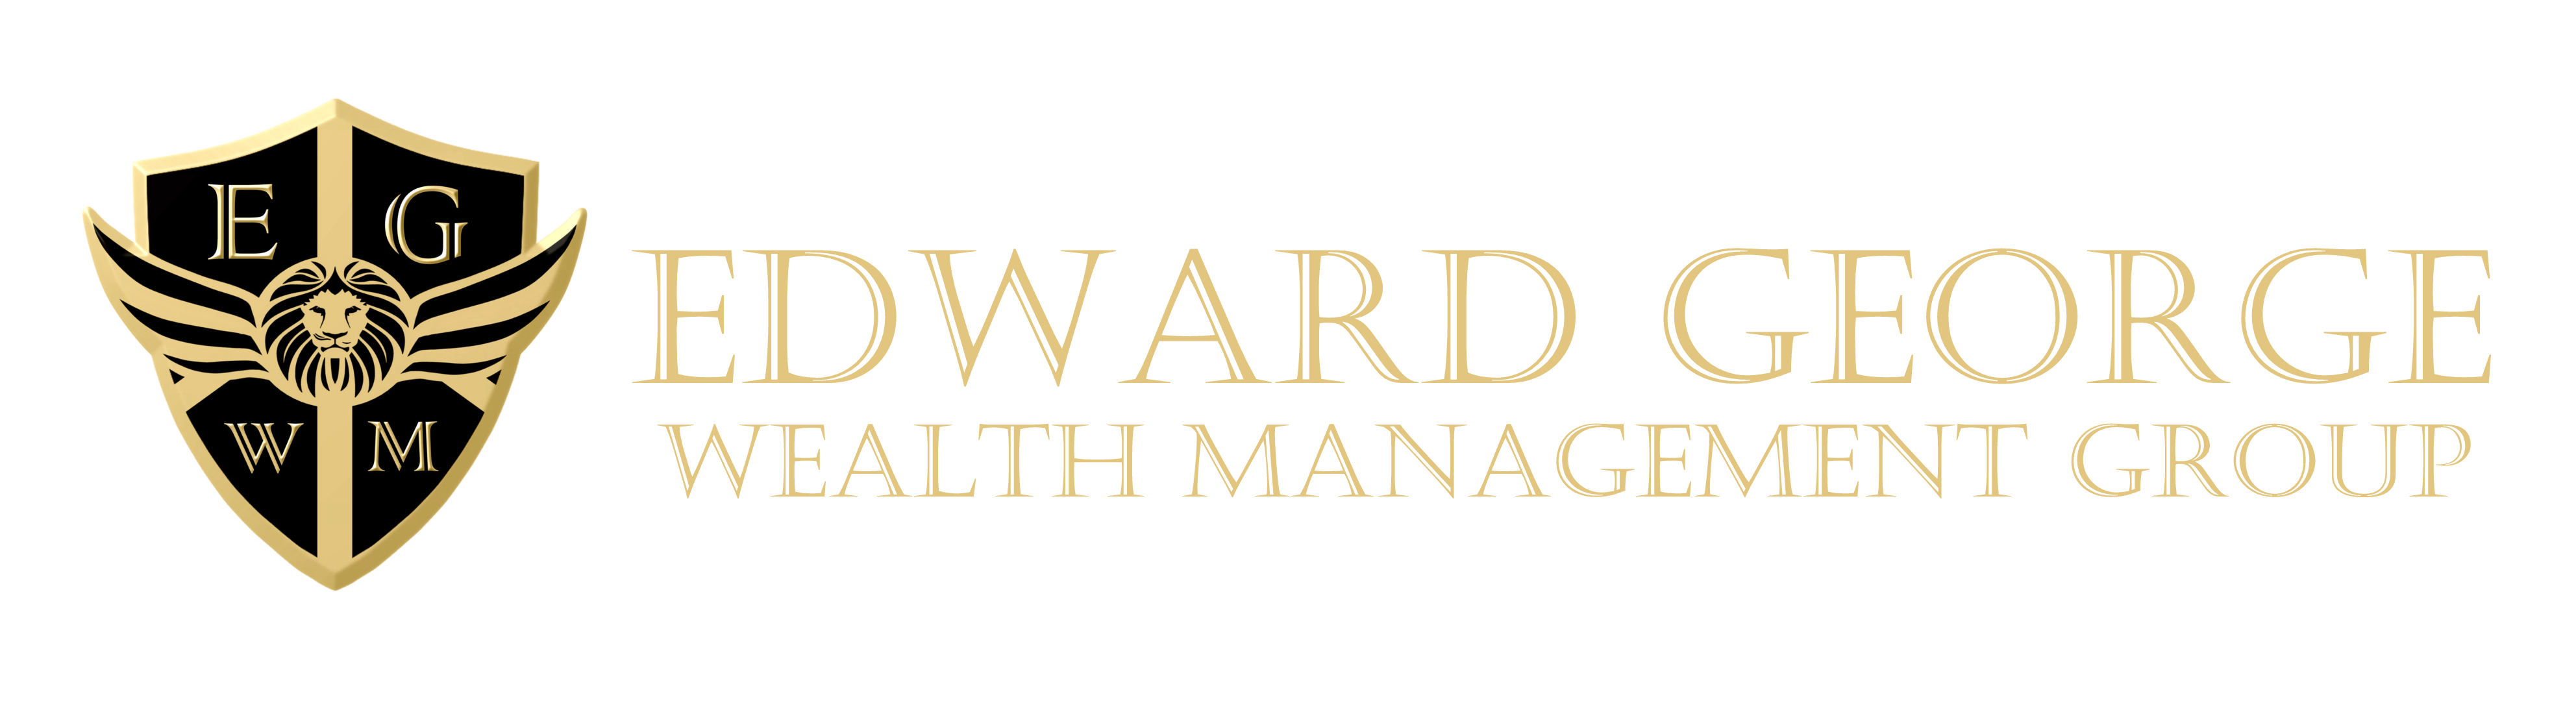 Edward George Wealth Management - Scottsdale, AZ